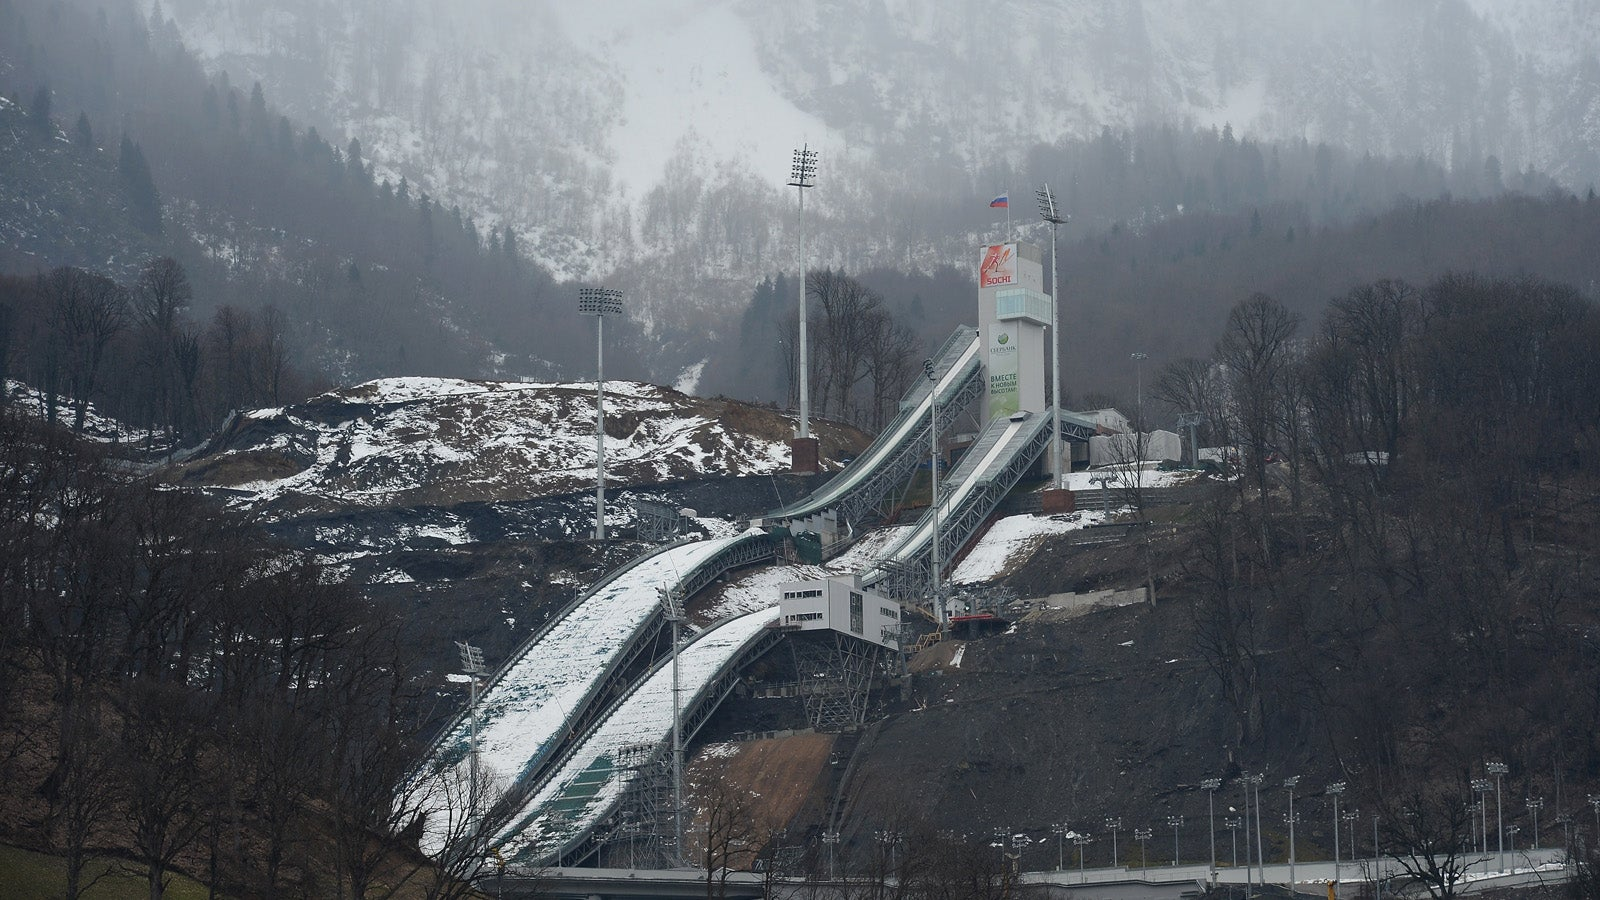 These Are the Futuristic Venues of the Upcoming Winter Olympics